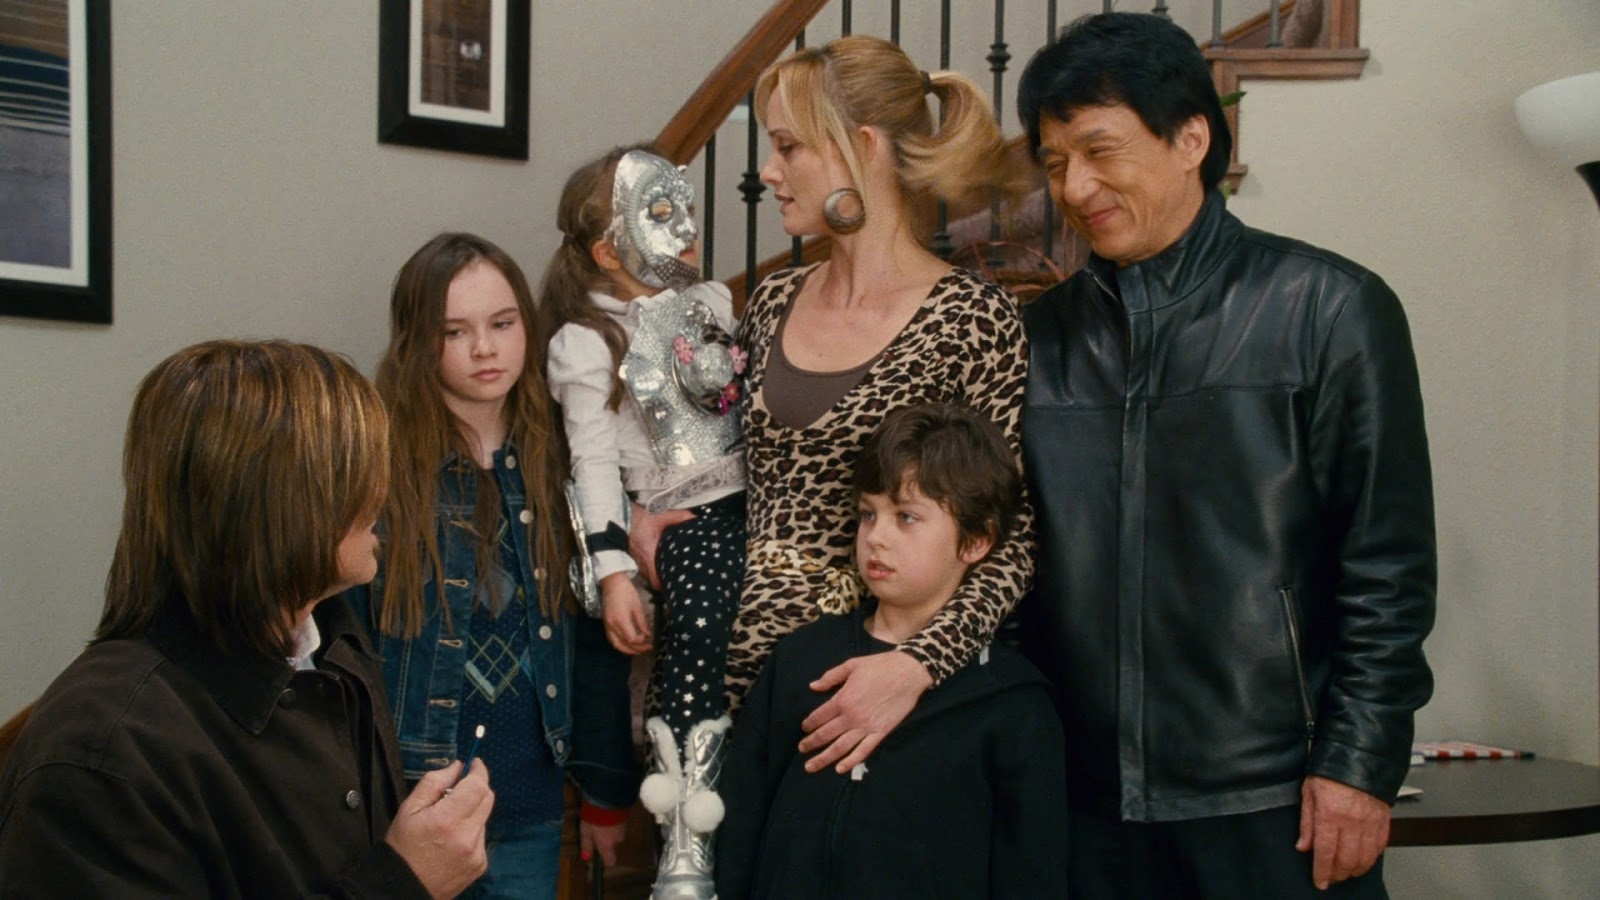 The Spy Next Door Starring Jackie Chan And Family